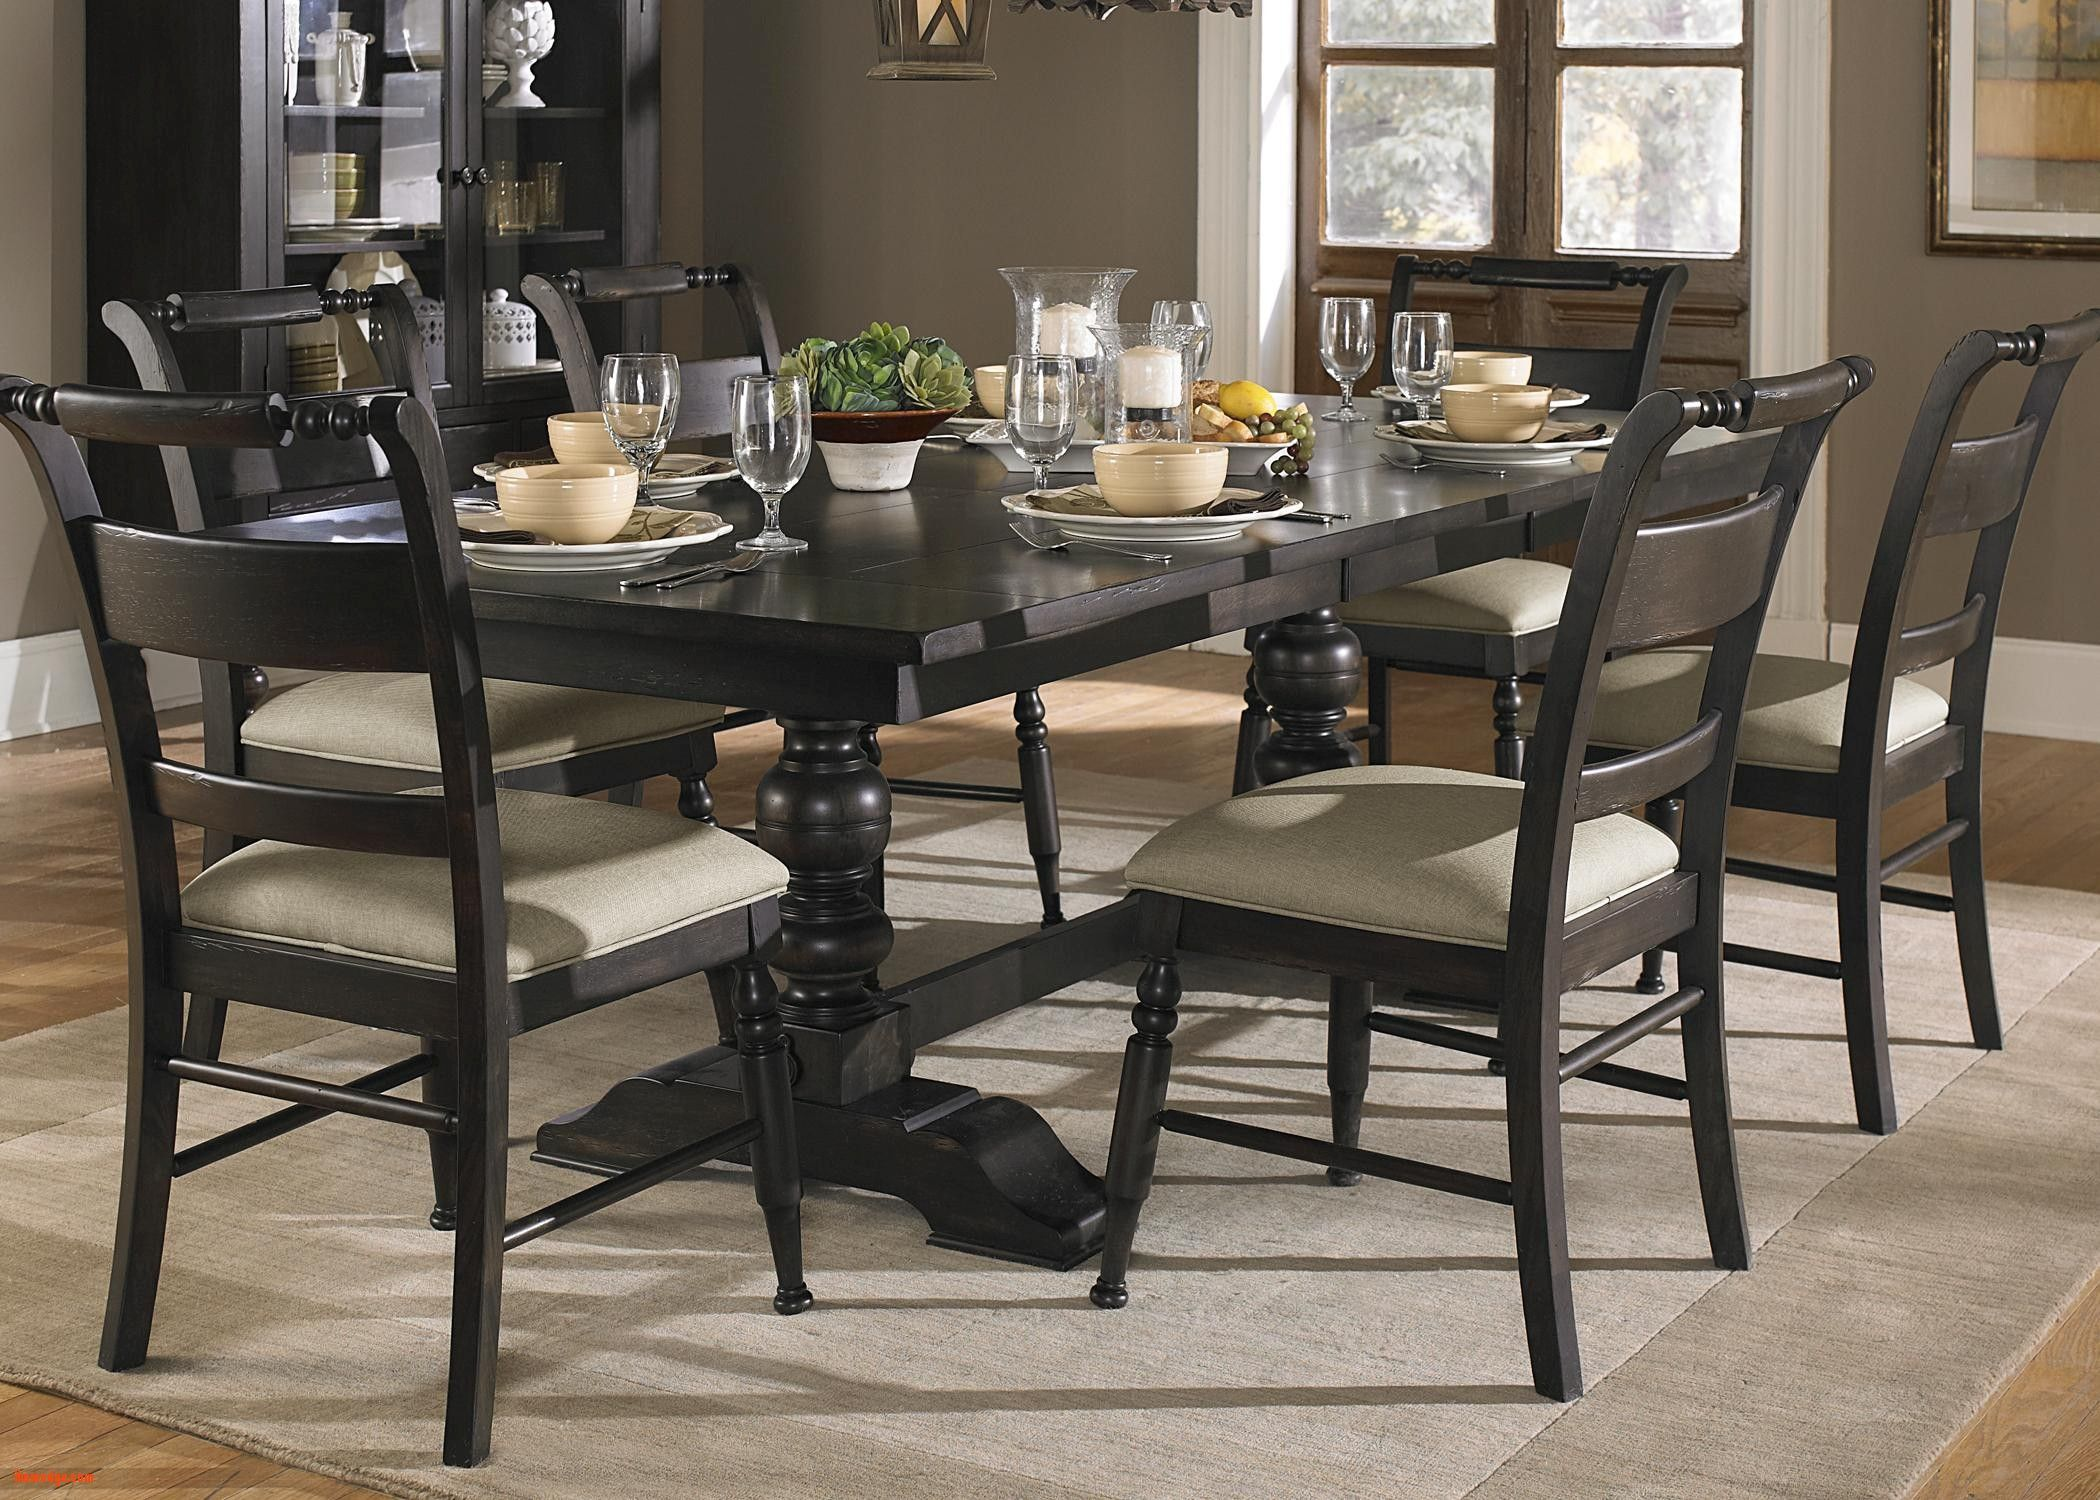 pinihomedge on dining room | pinterest | dining, dining room and